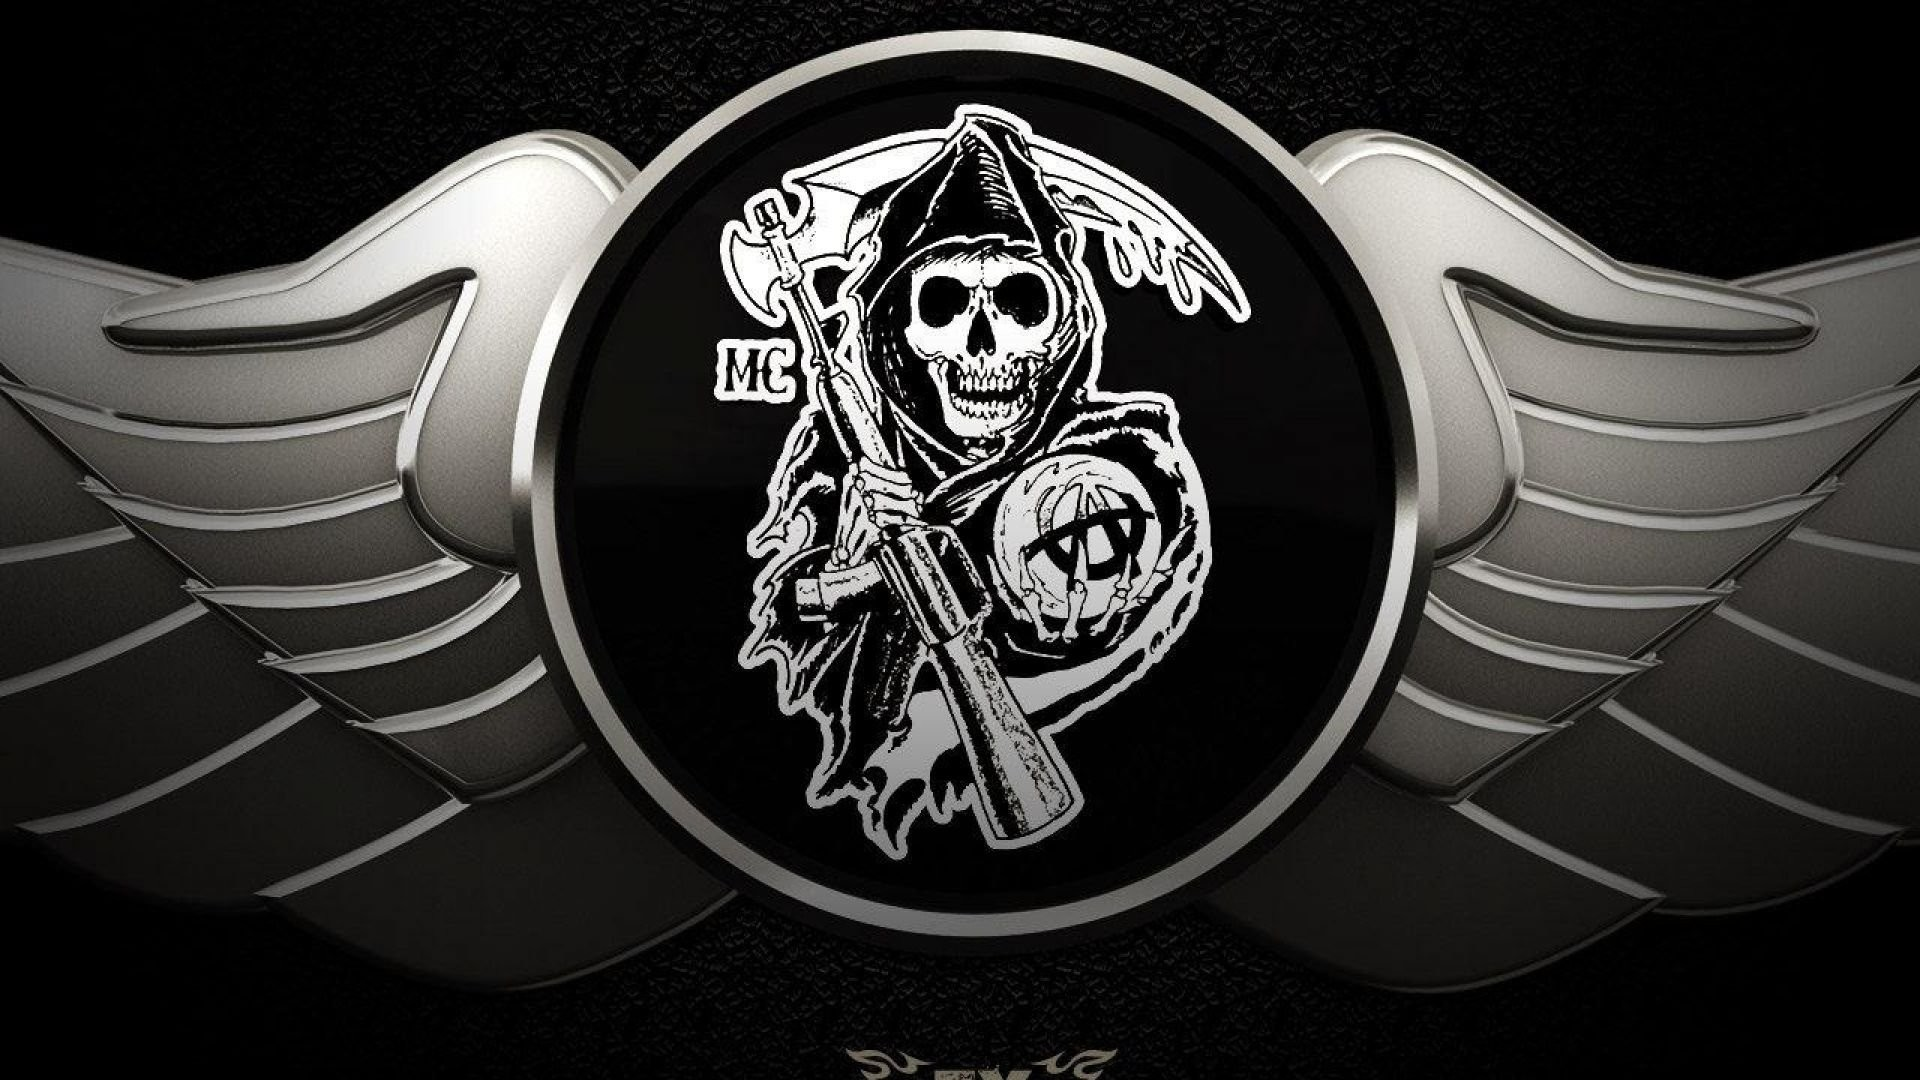 Sons of anarchy reaper wallpaper 67 images - Soa wallpaper iphone ...